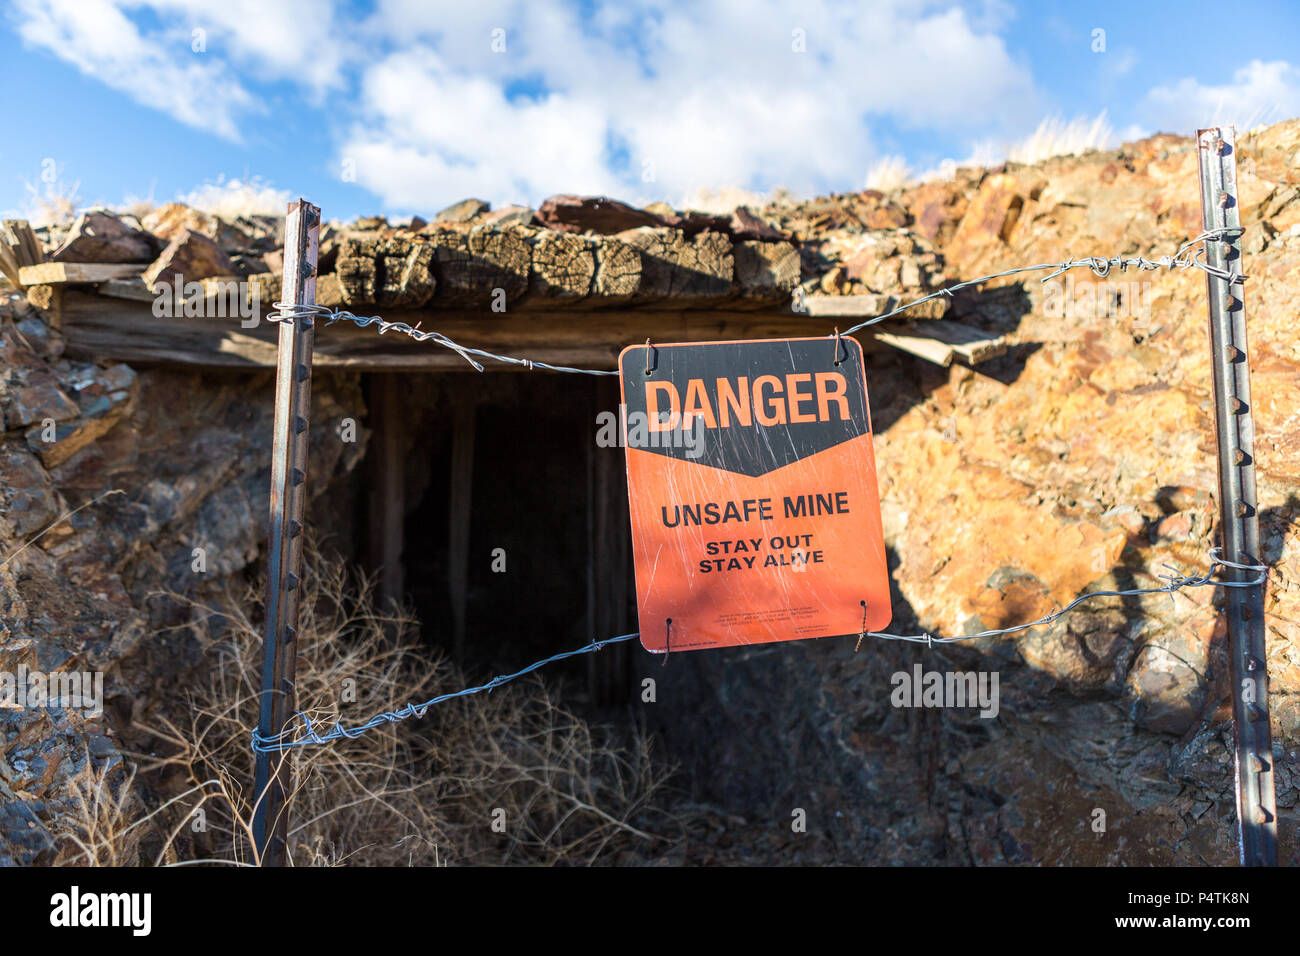 Entrance to a mining shaft barred with stay out sign - Stock Image